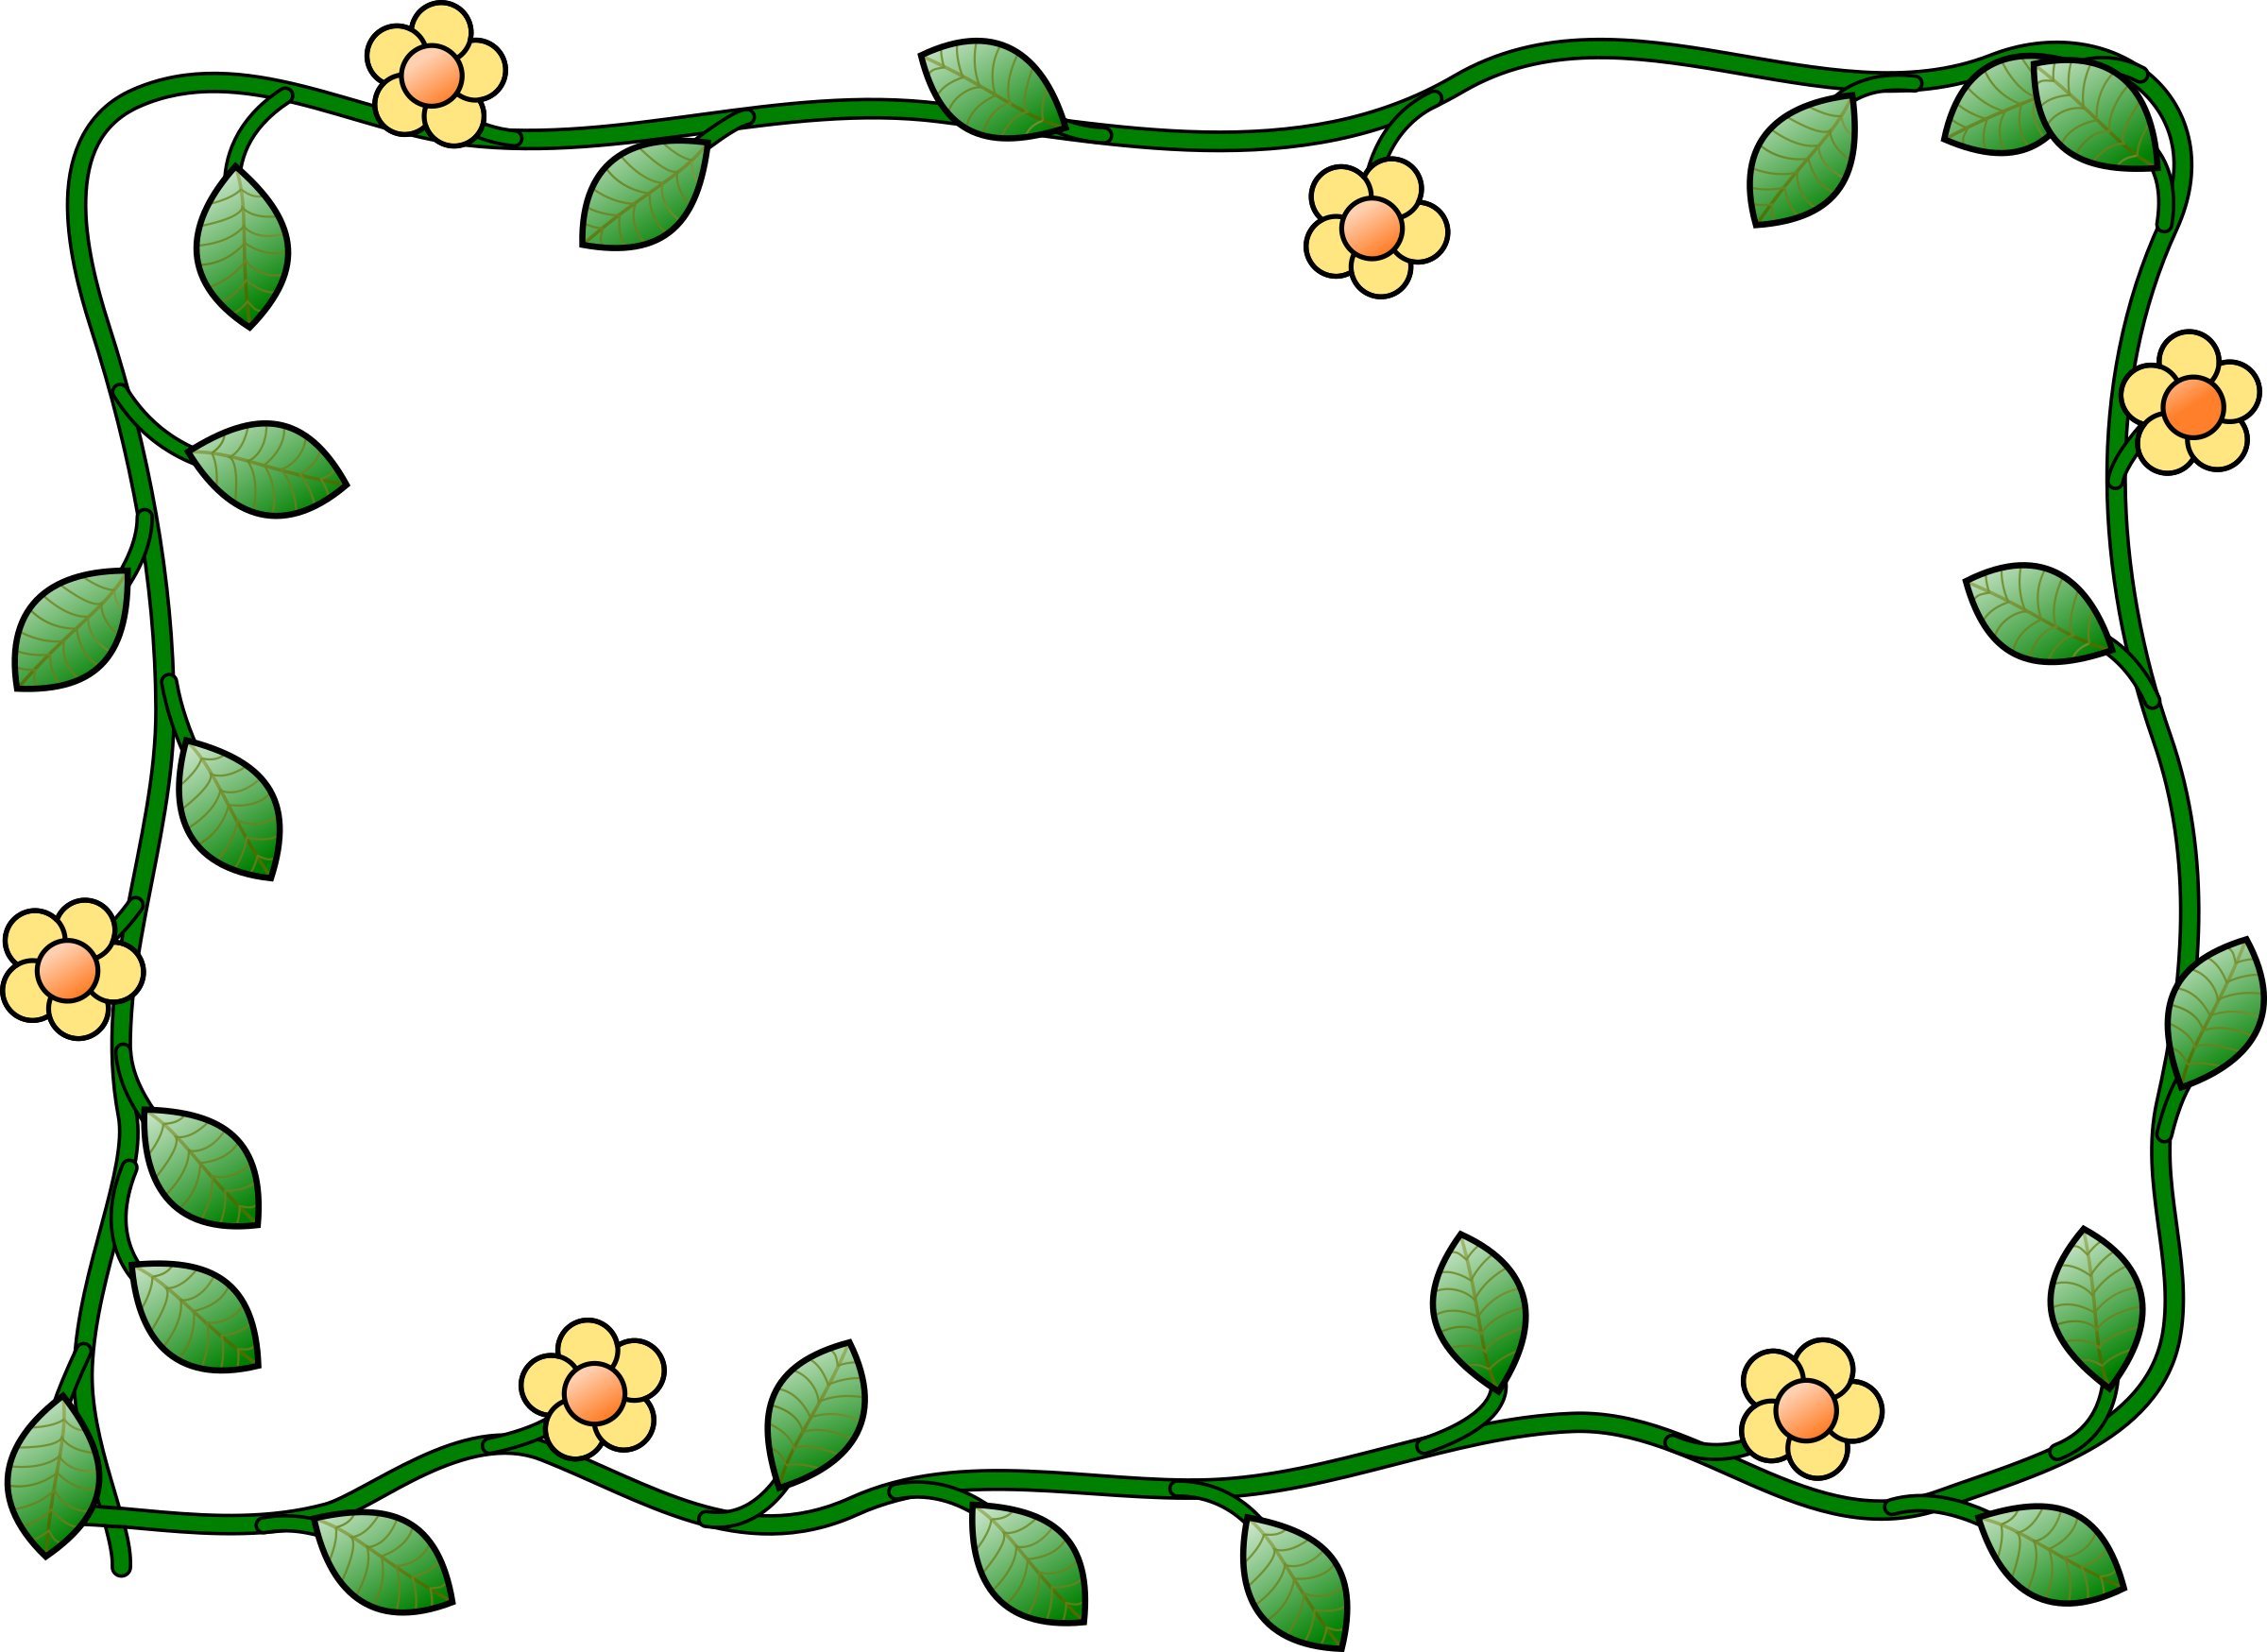 Cartoon frame png. Flower icons free and